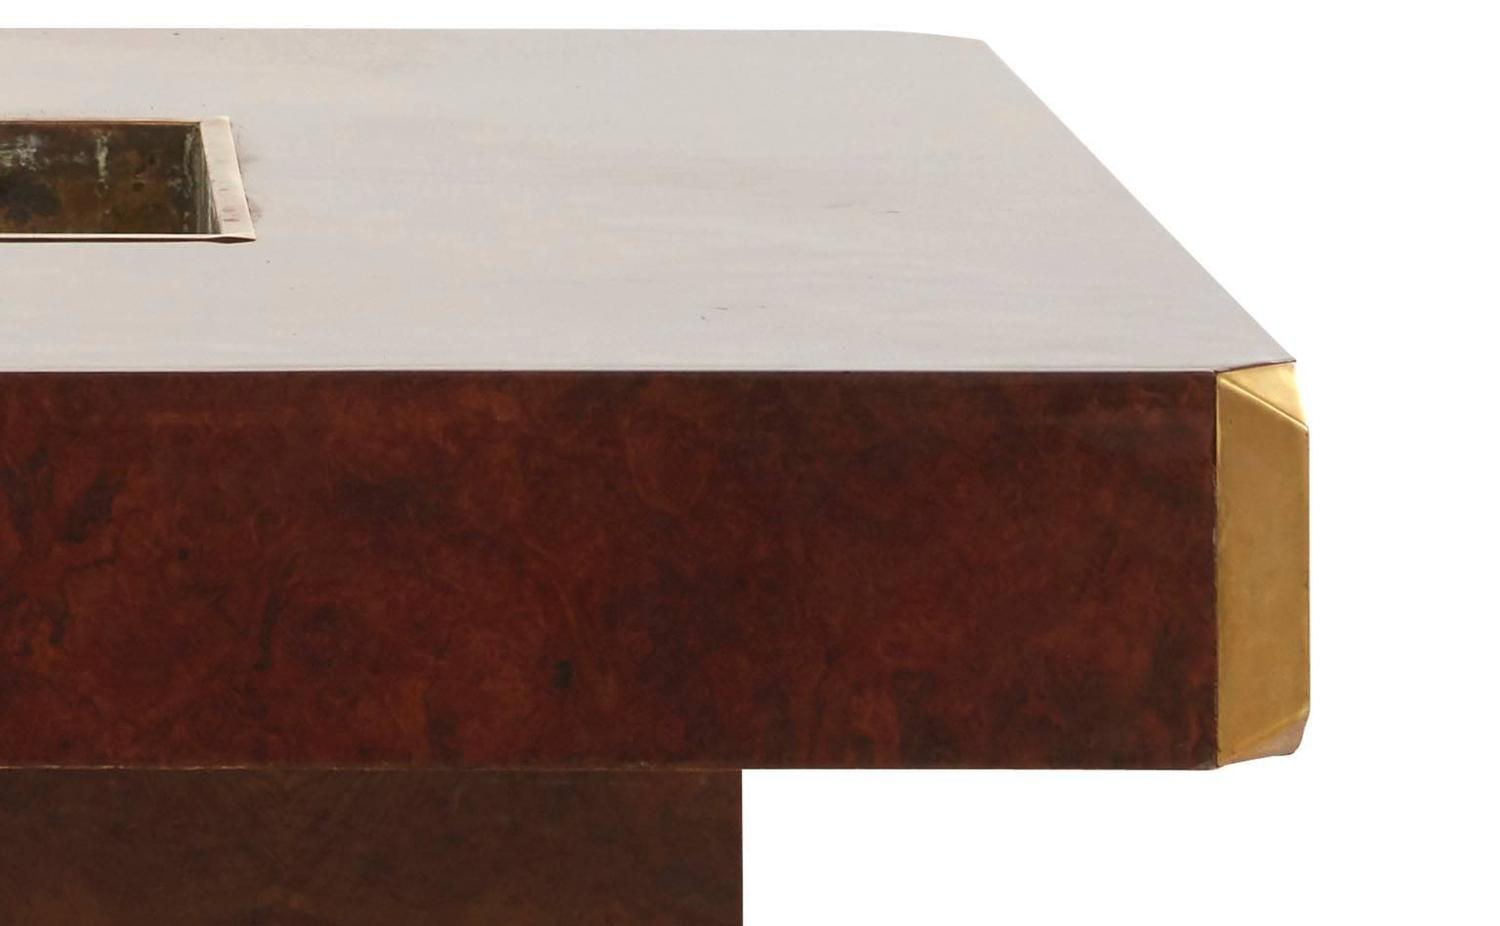 Vintage Willy Rizzo Burl Wood Coffee Table At 1stdibs